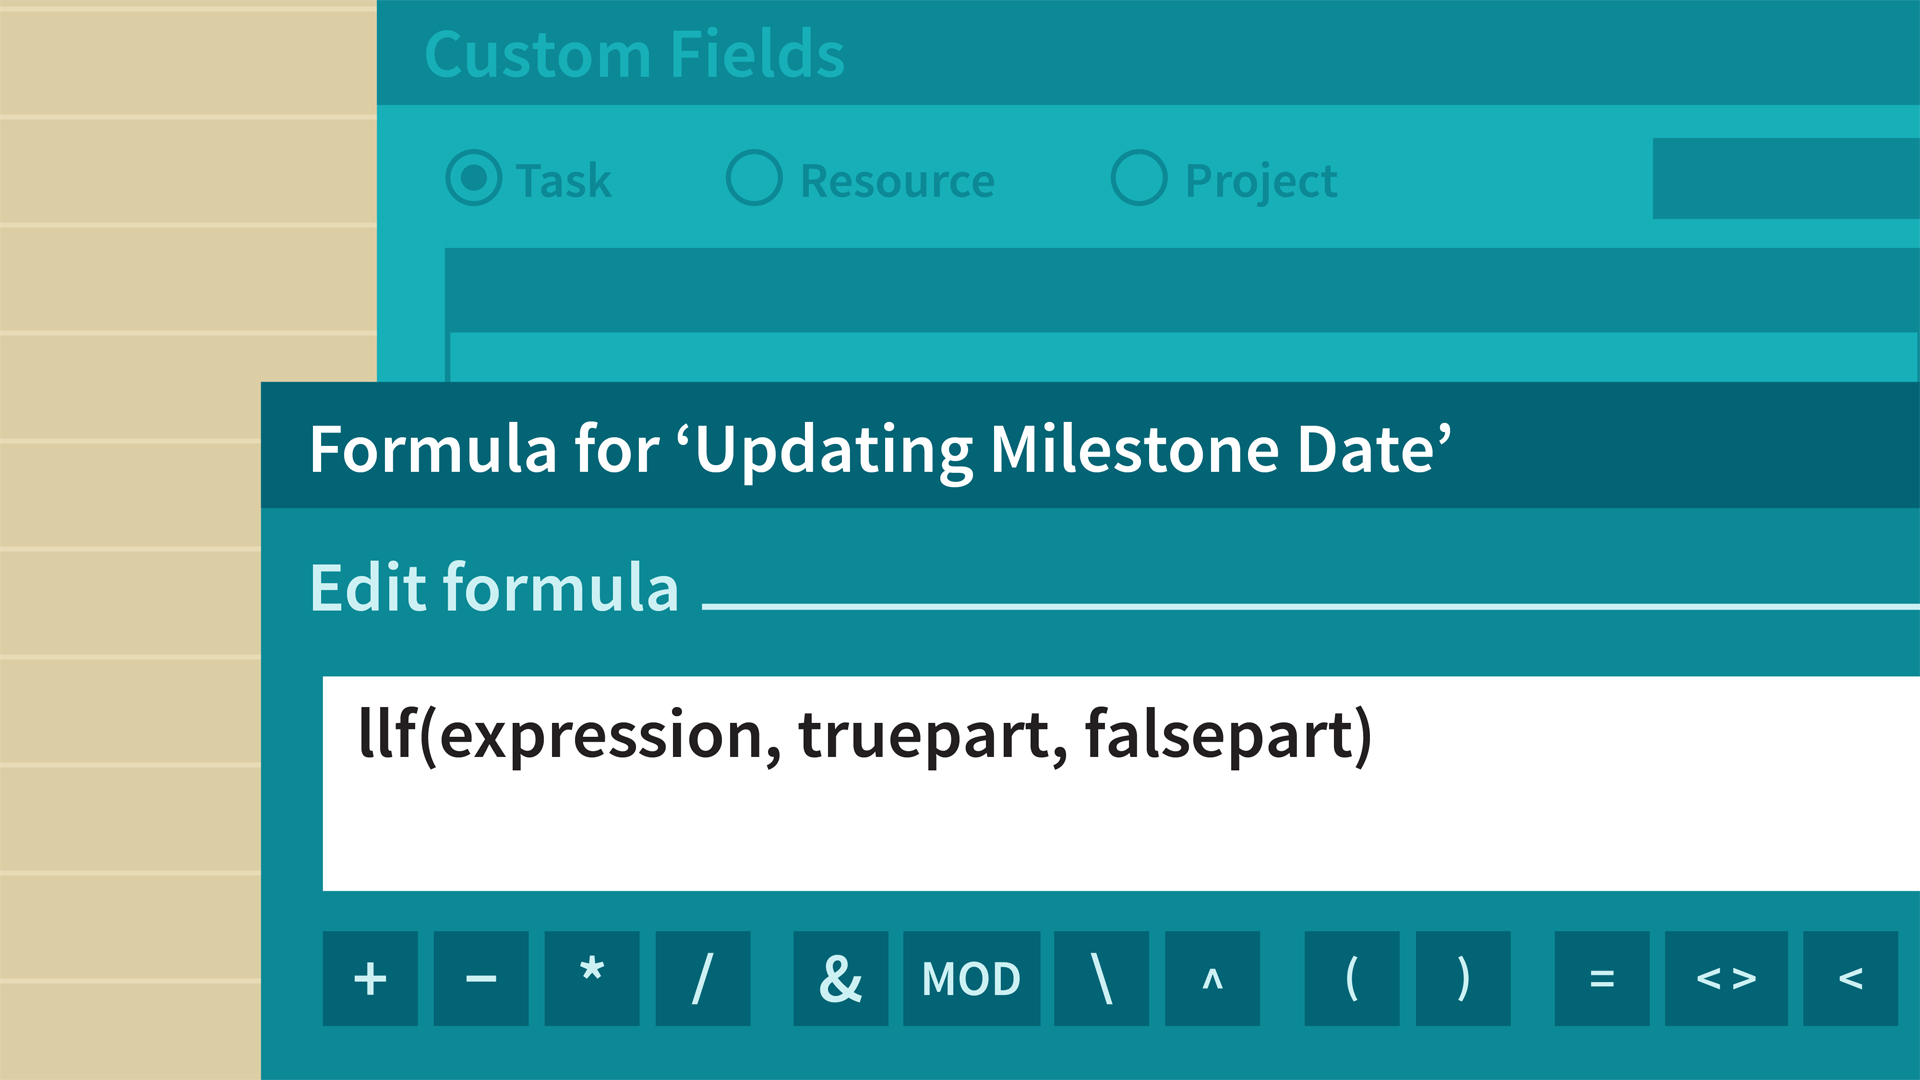 Using a formula to roll up values to summary tasks